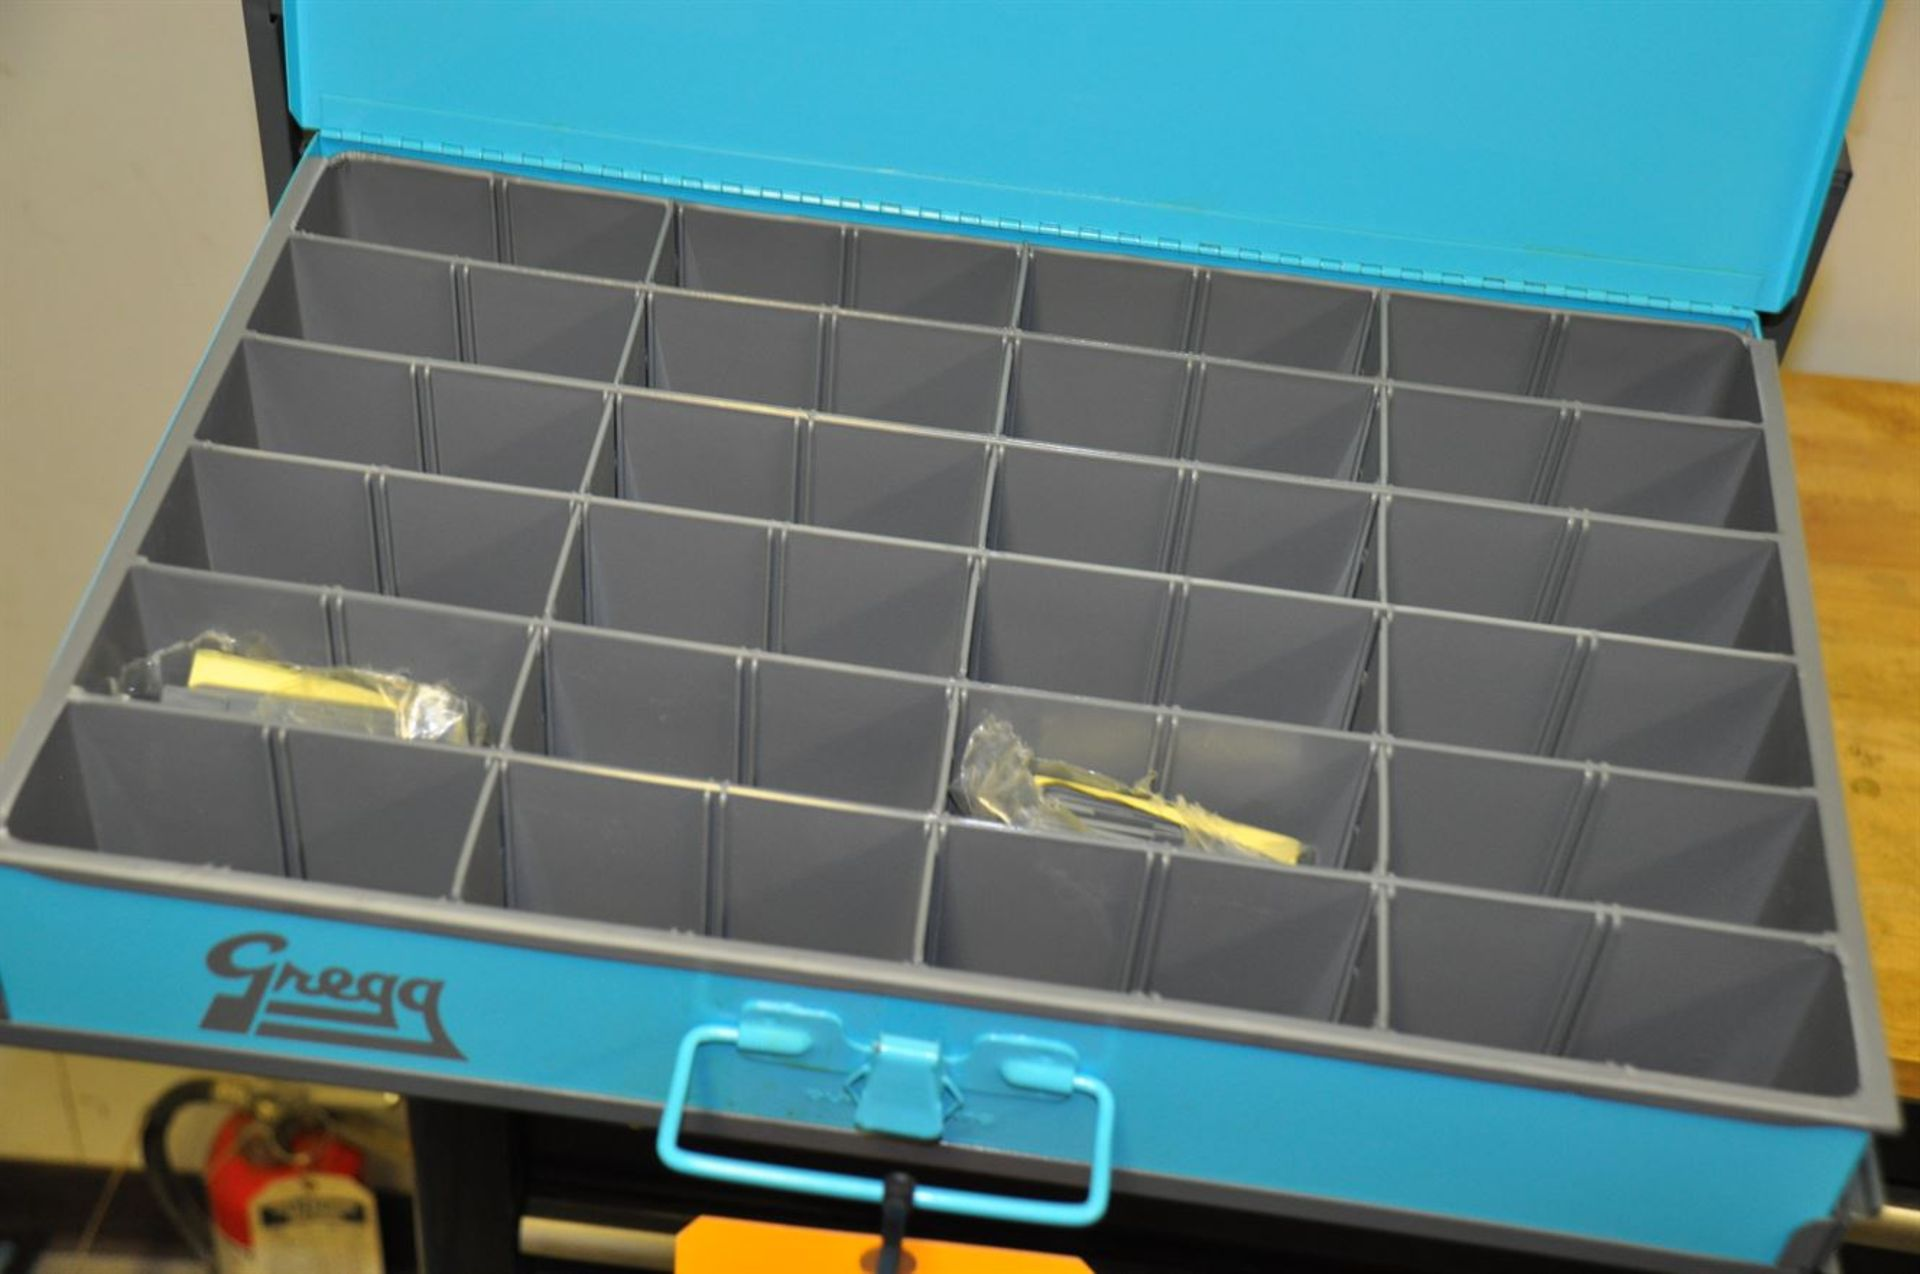 Durham Compartment Rack w/ 4 removable compartments - Image 2 of 2